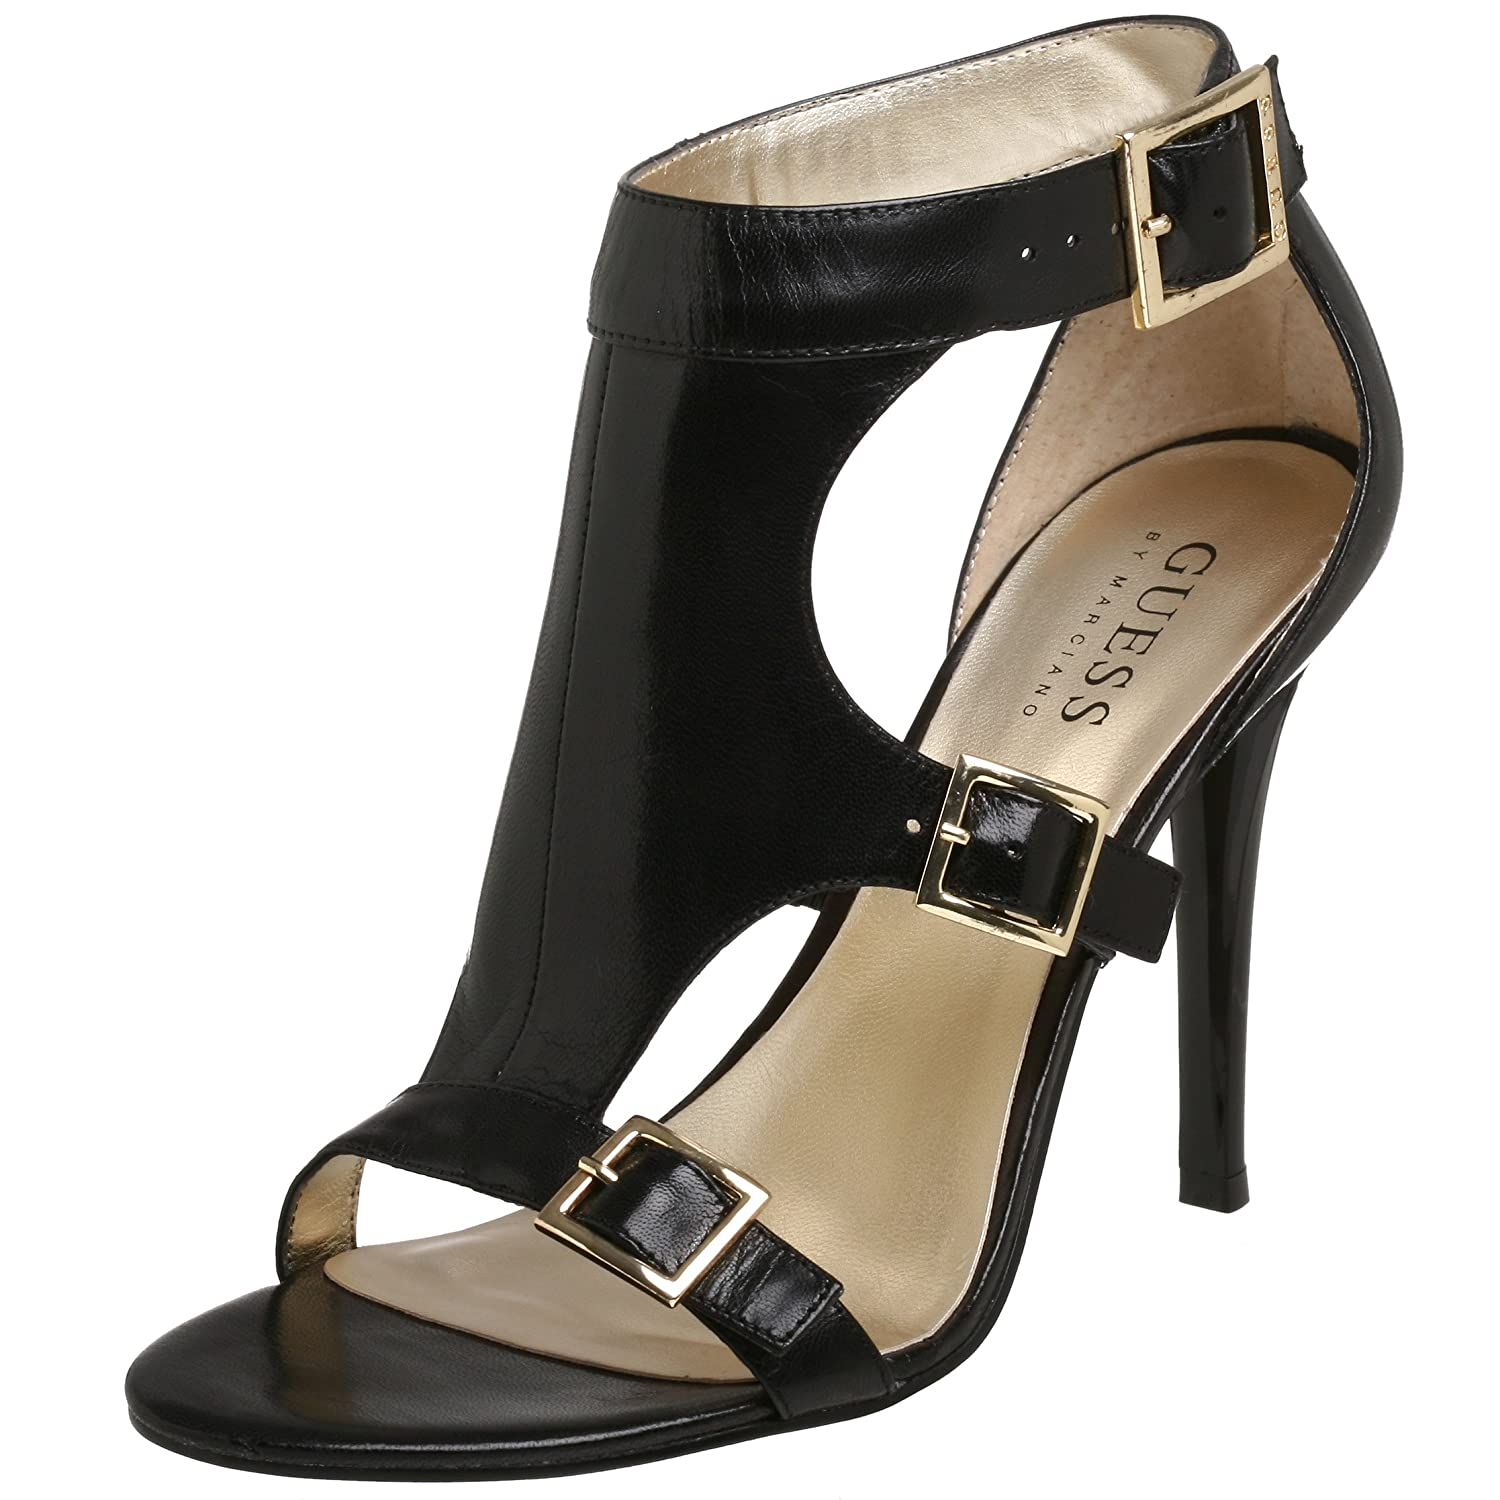 Endless.com: GUESS by Marciano Women's Delicacy Sandal: Sandals - Free Overnight Shipping & Return Shipping :  designer shoes sandals shoes sandal